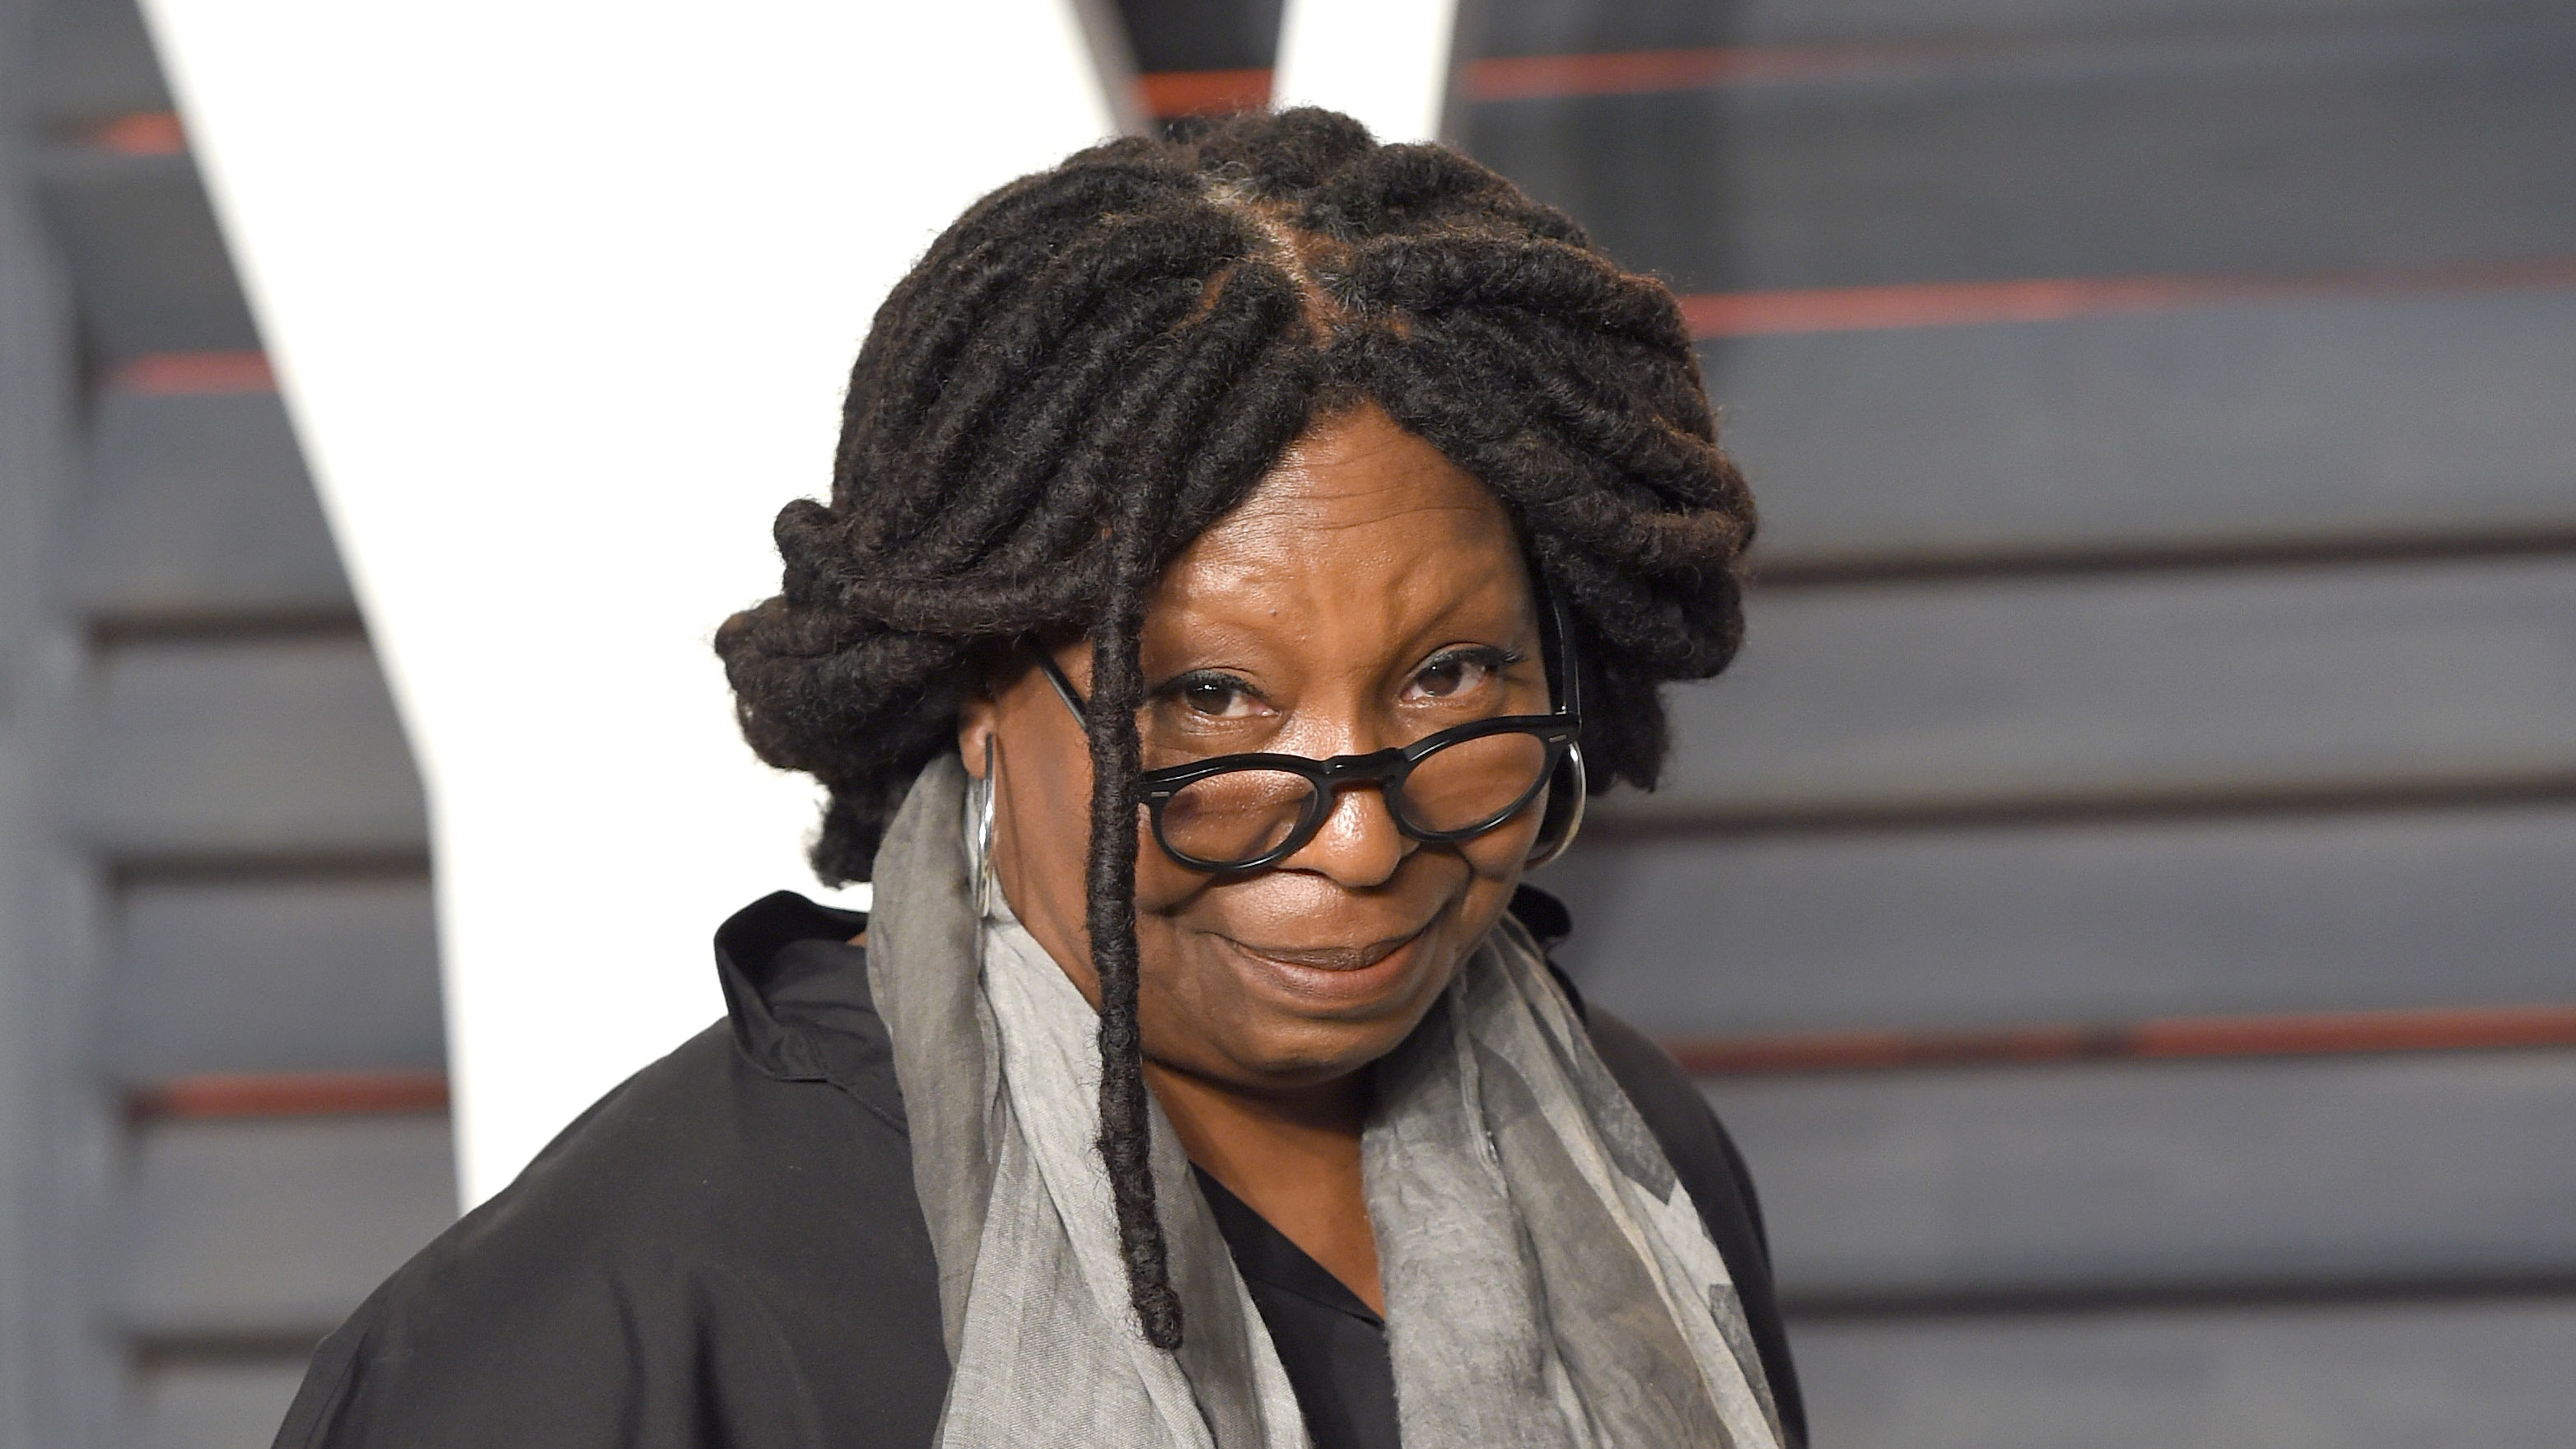 'The View' host Whoopi Goldberg explains month-long absence: 'I'm not dead'